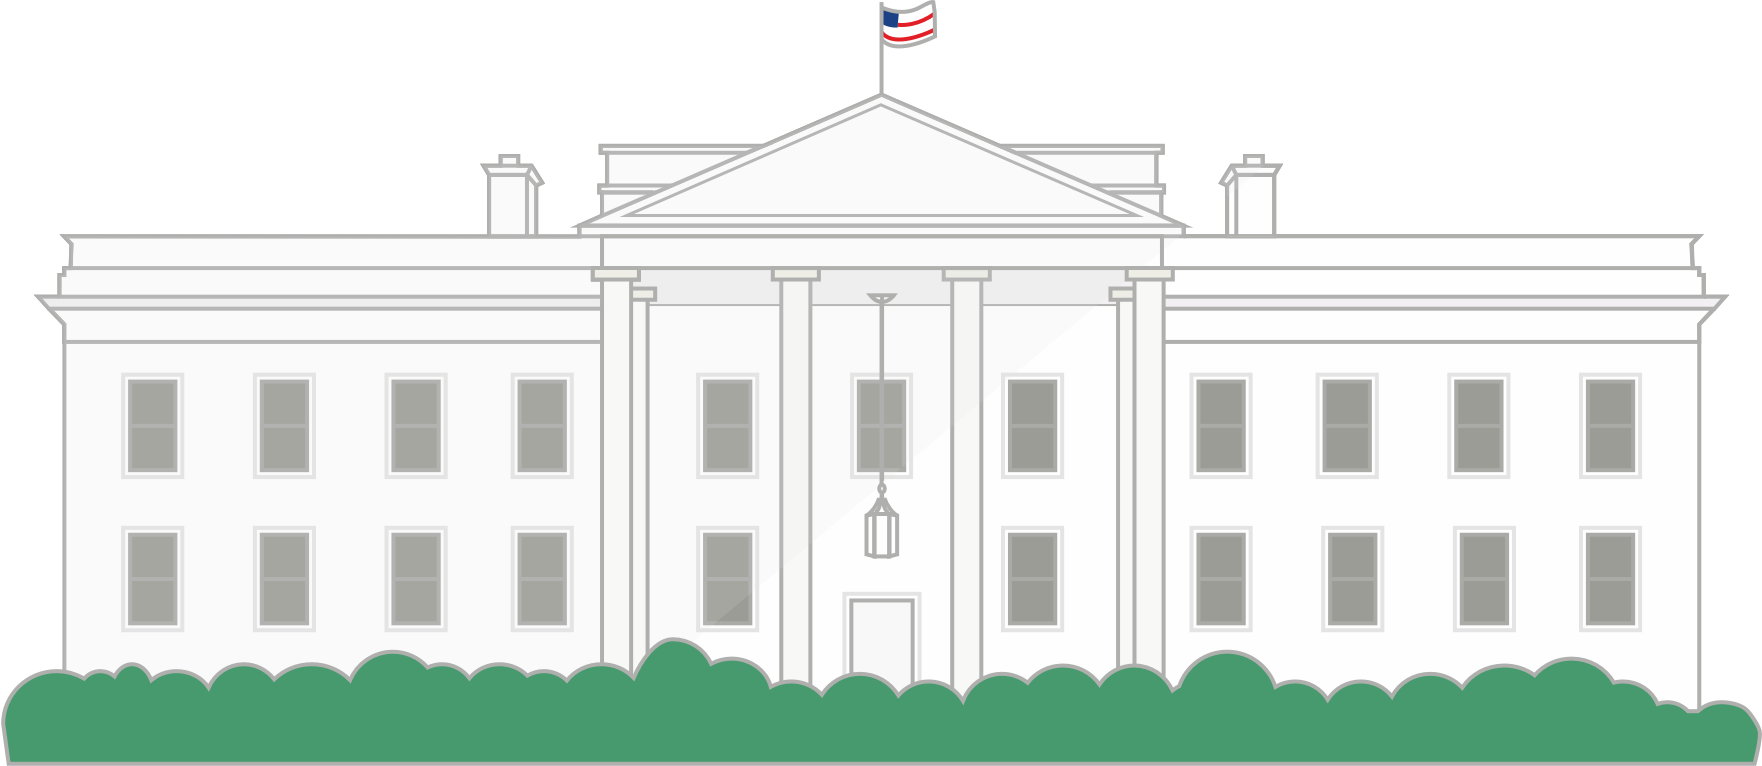 White house png. Build a wall to